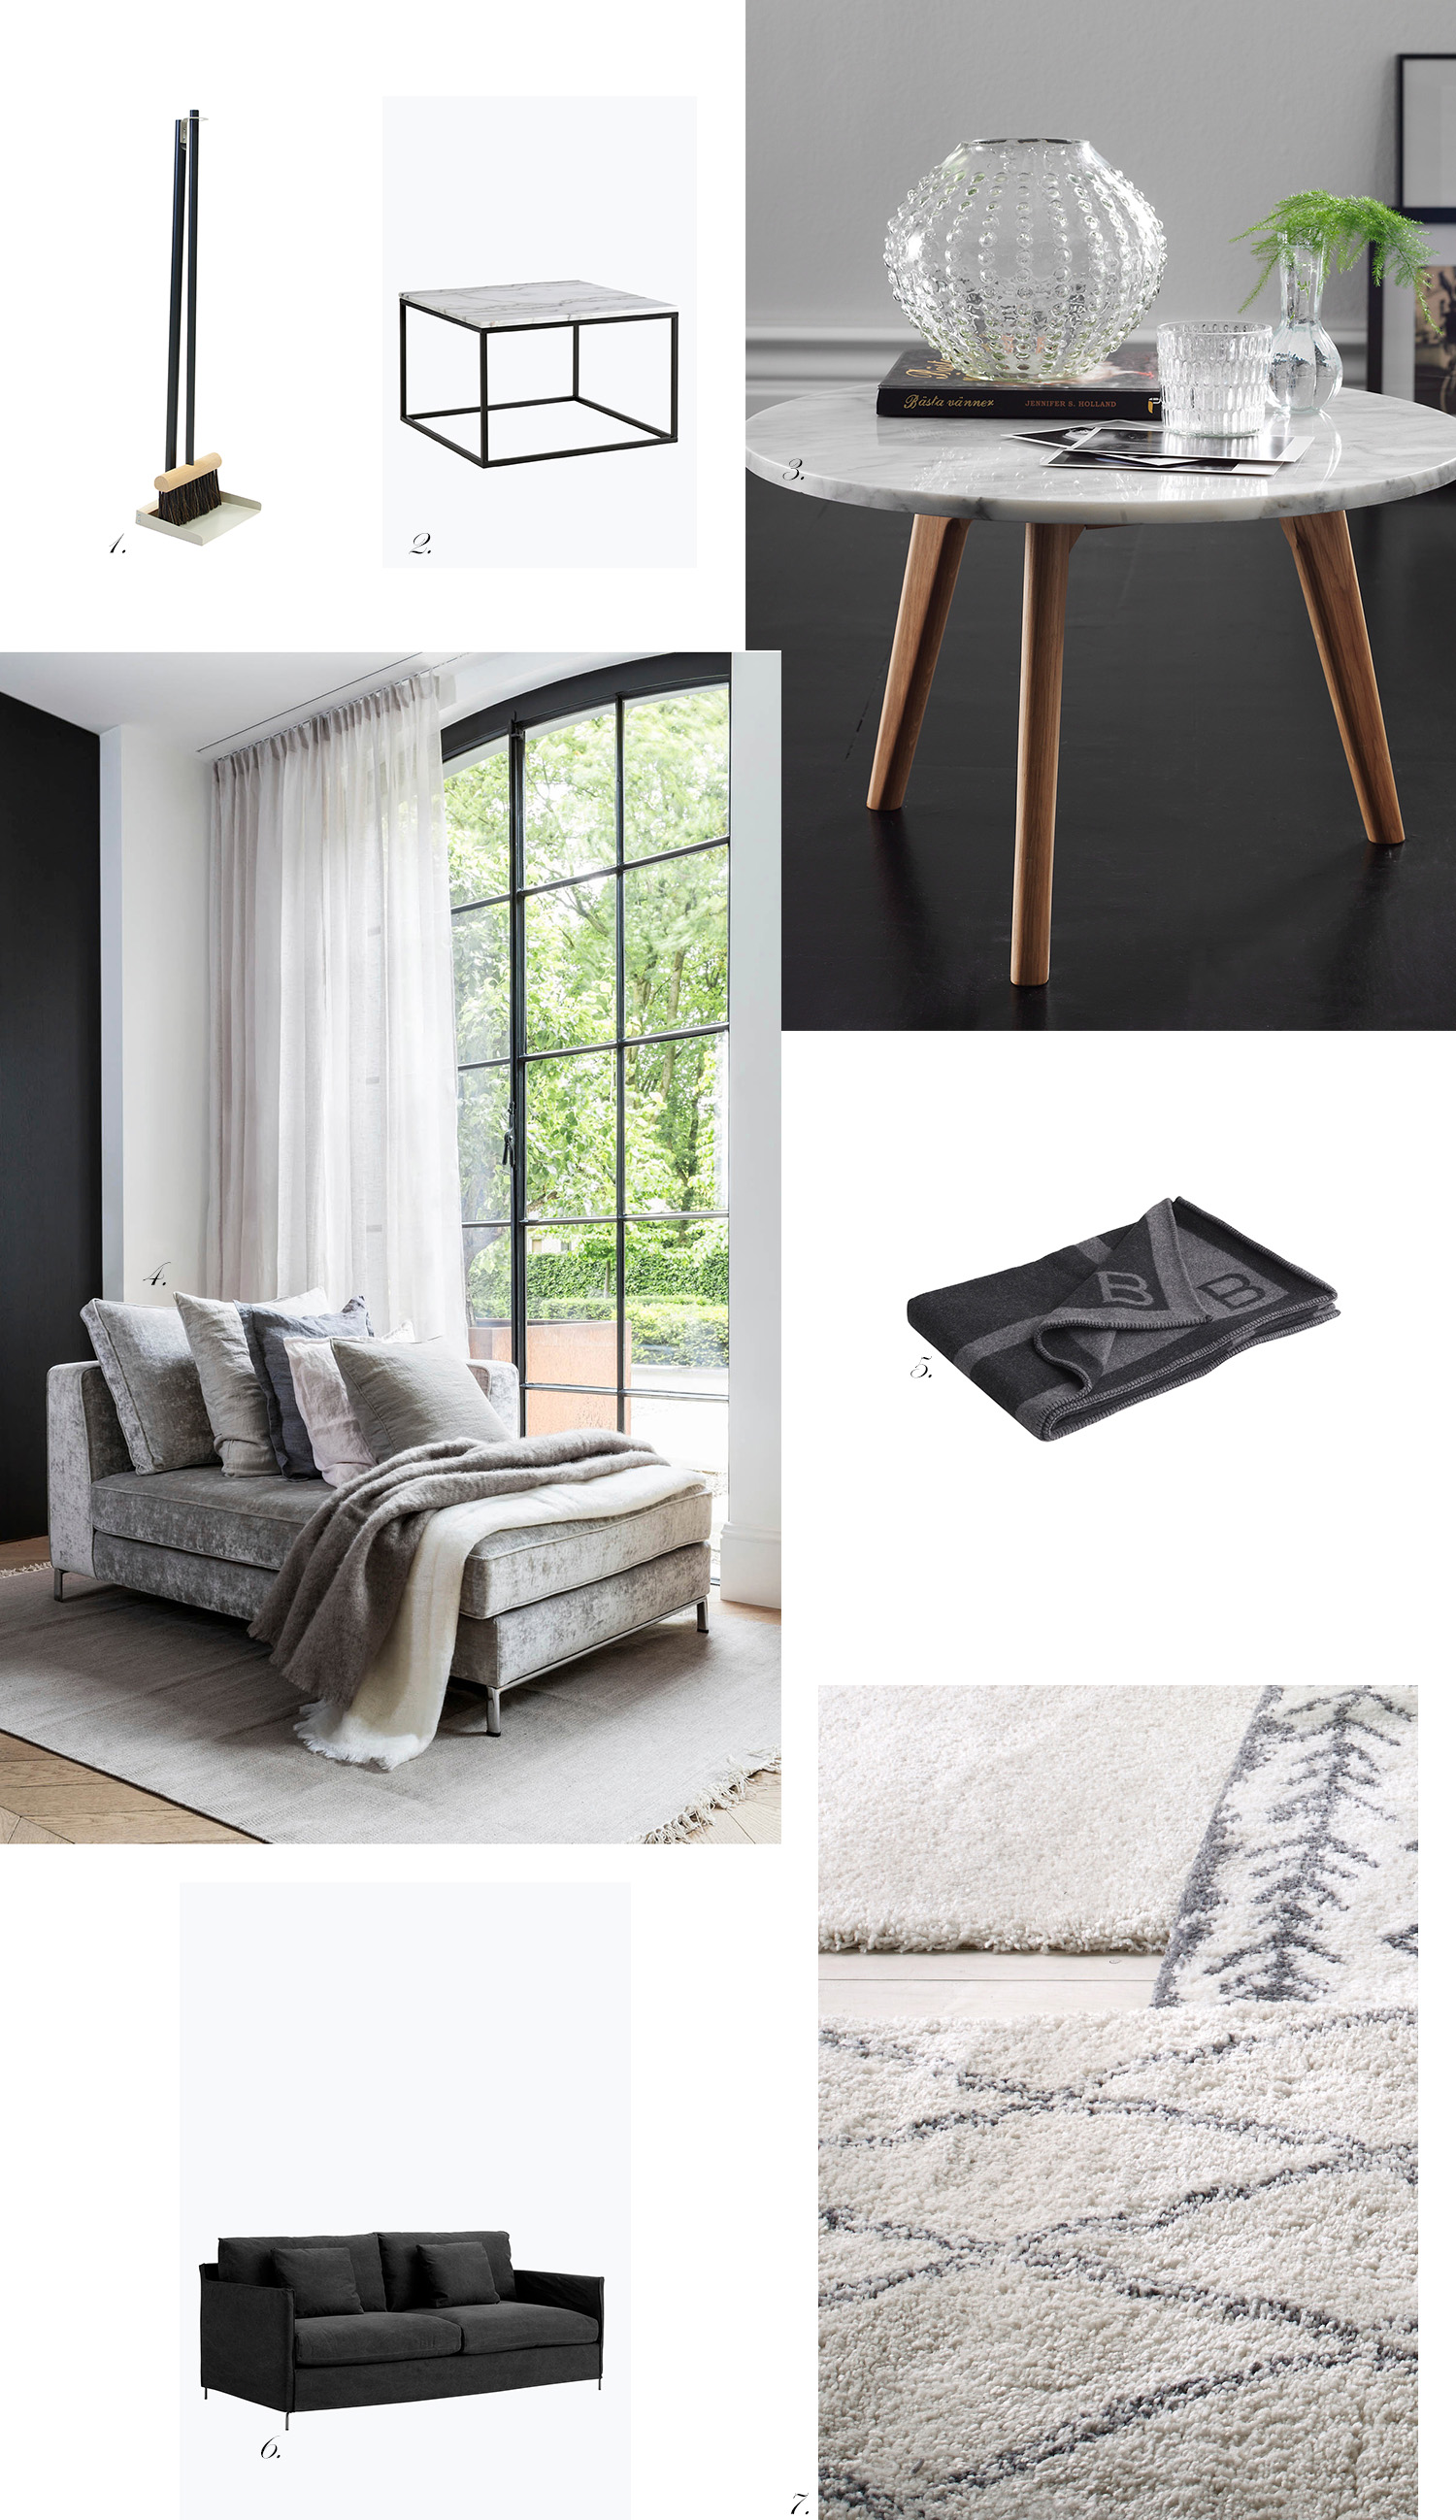 Char and the city - Bachelor pad - ideas for interior design and decoration - inspiration from webshops - grey, black and white - read more on the blog: //www.idealista.fi/charandthecity/2016/09/28/bachelor-pad #bachelorpad #interior #design